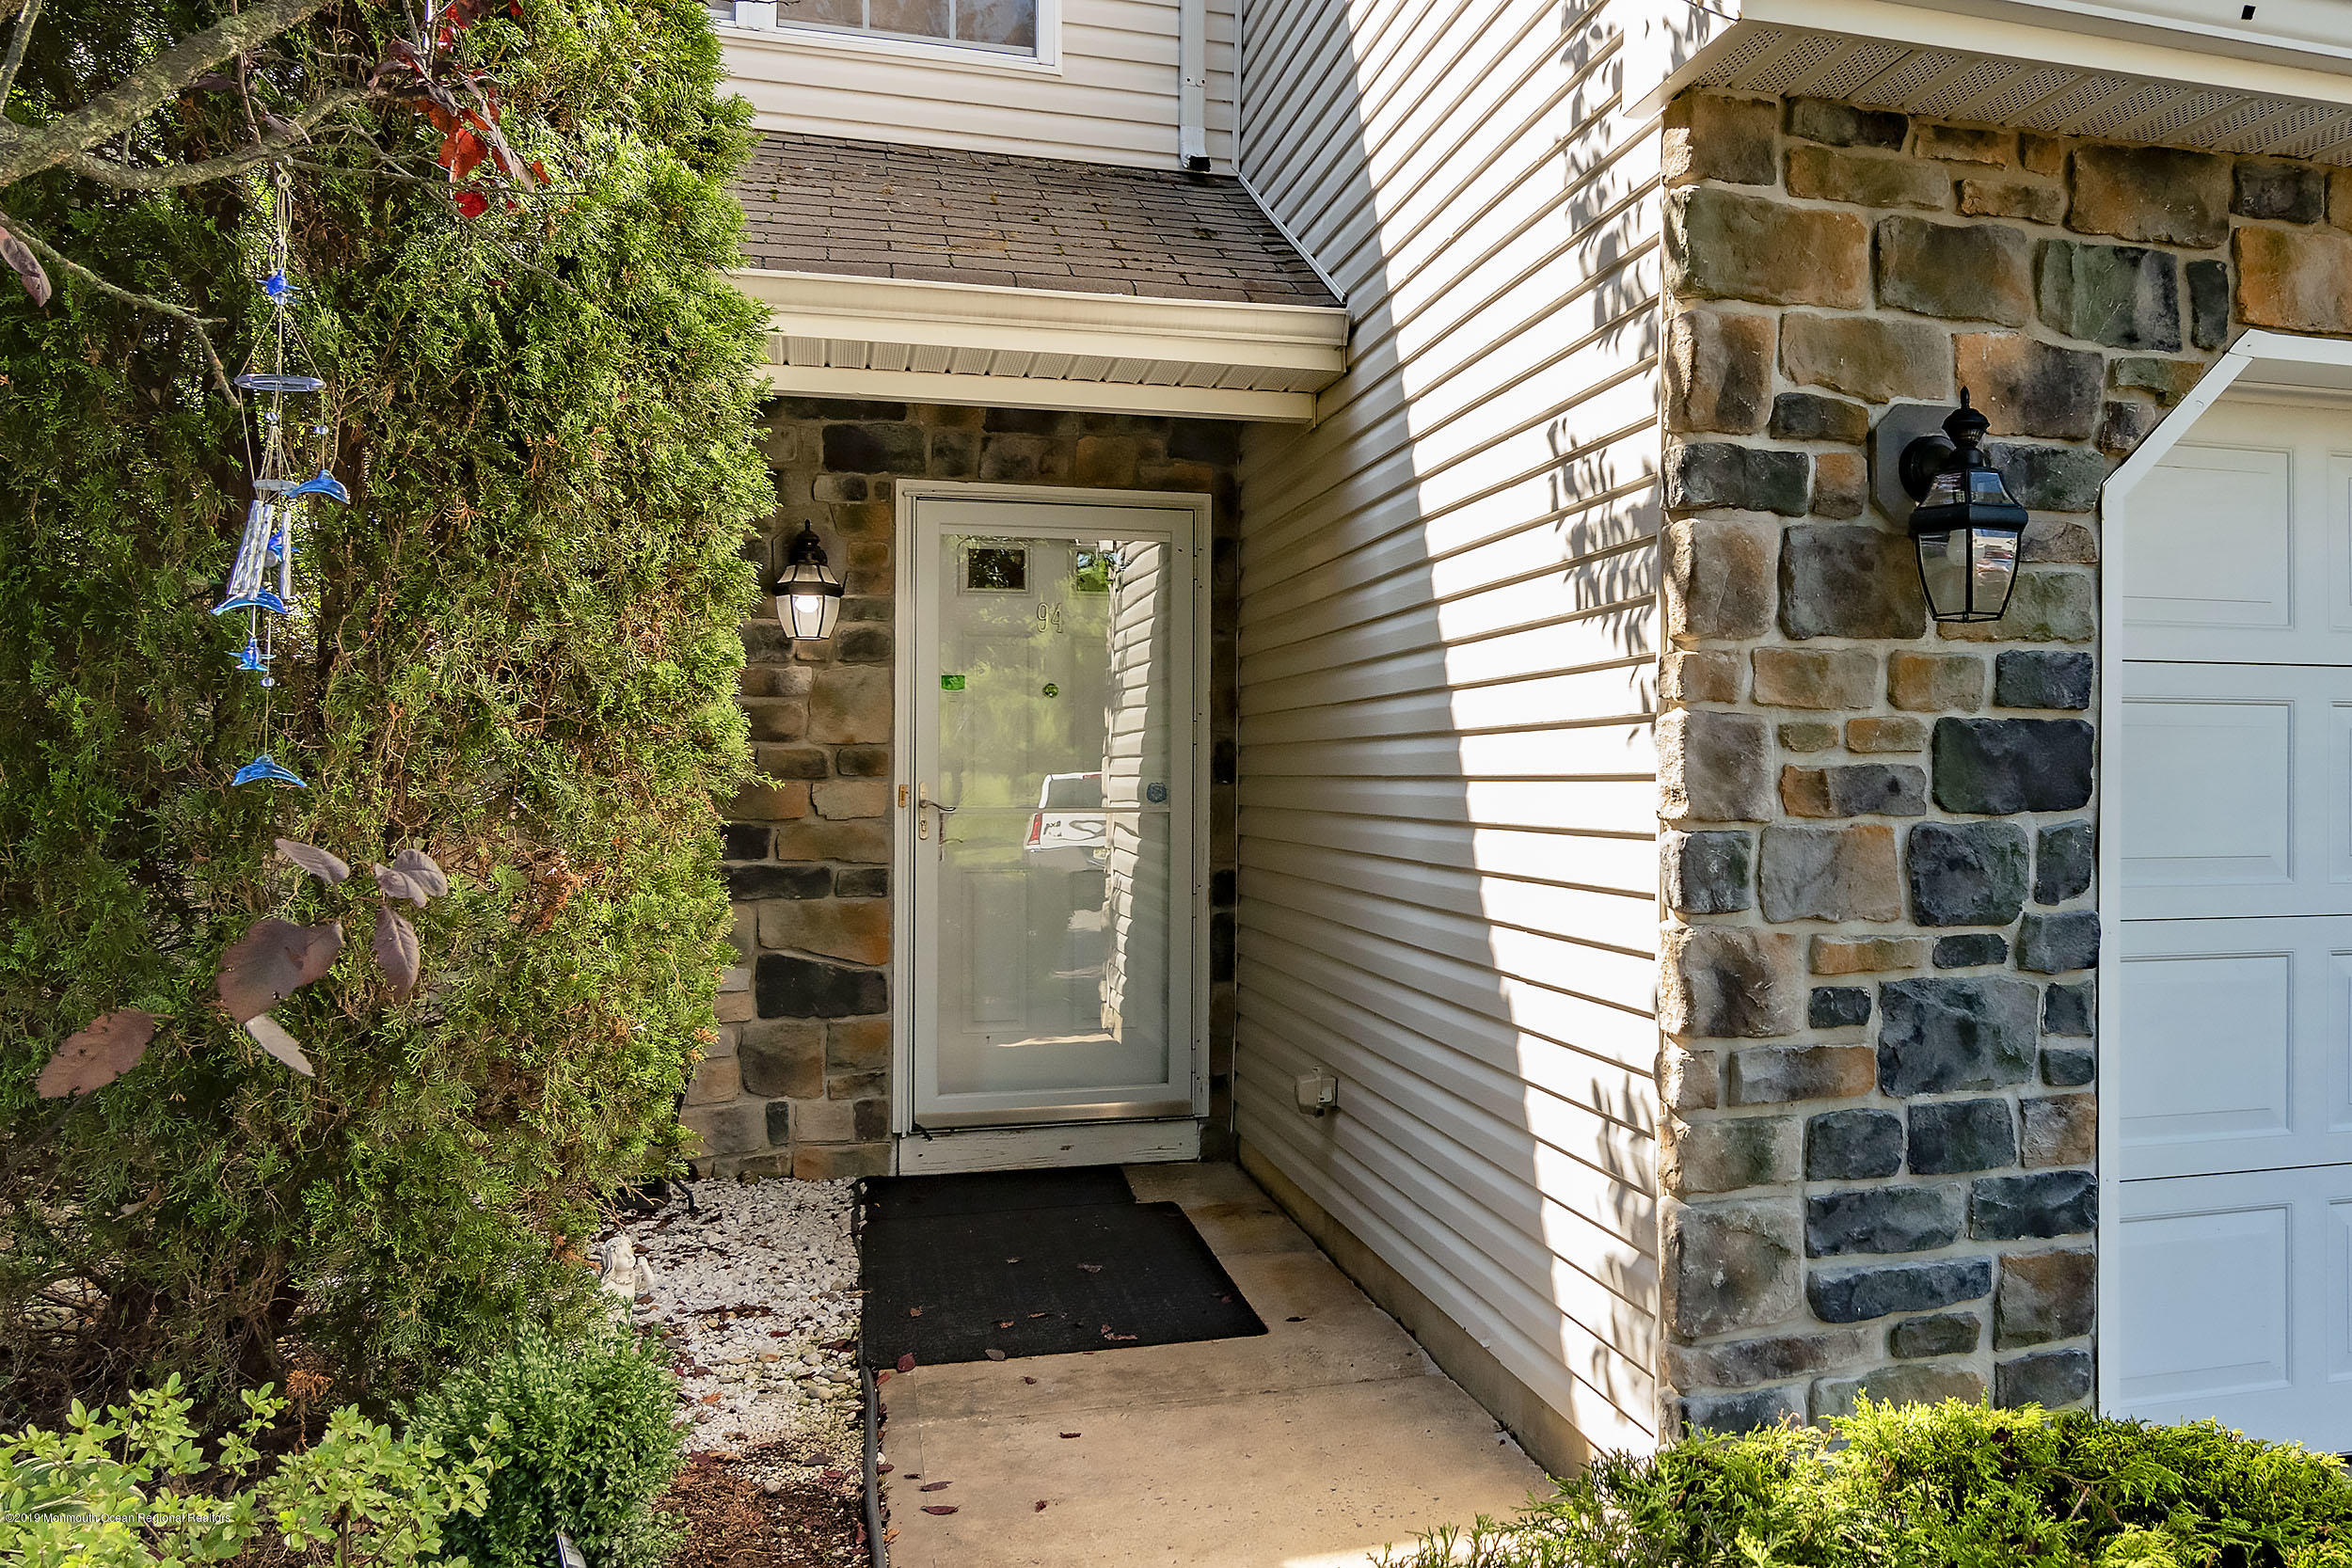 Fox Chase Condos and Townhouses for Sale in Tinton Falls NJ